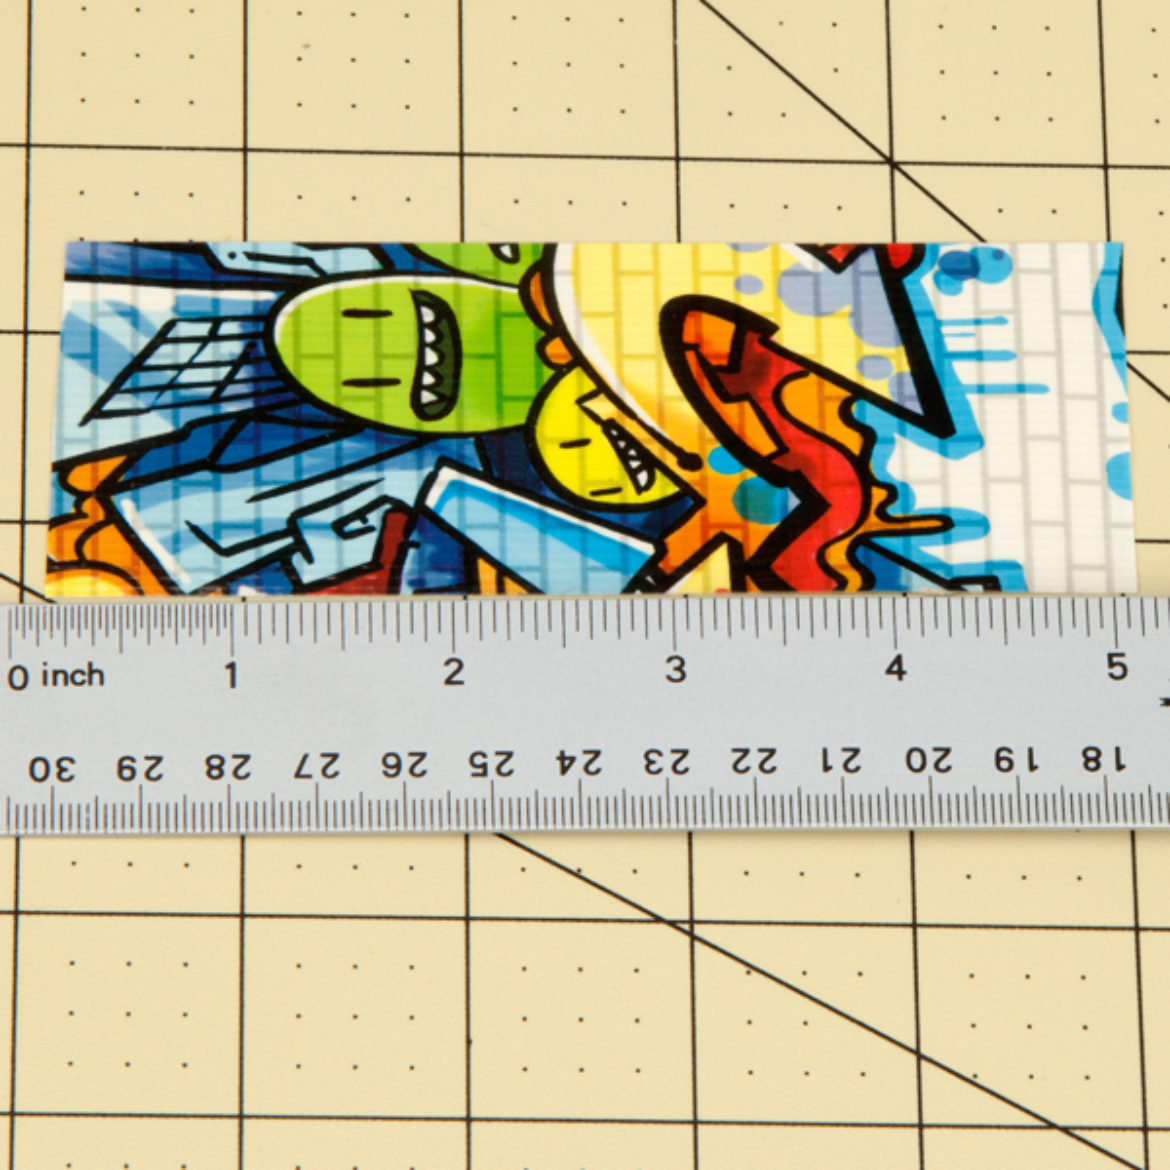 Strip of Duck Tape being measured to ensure that it is 5 inches long